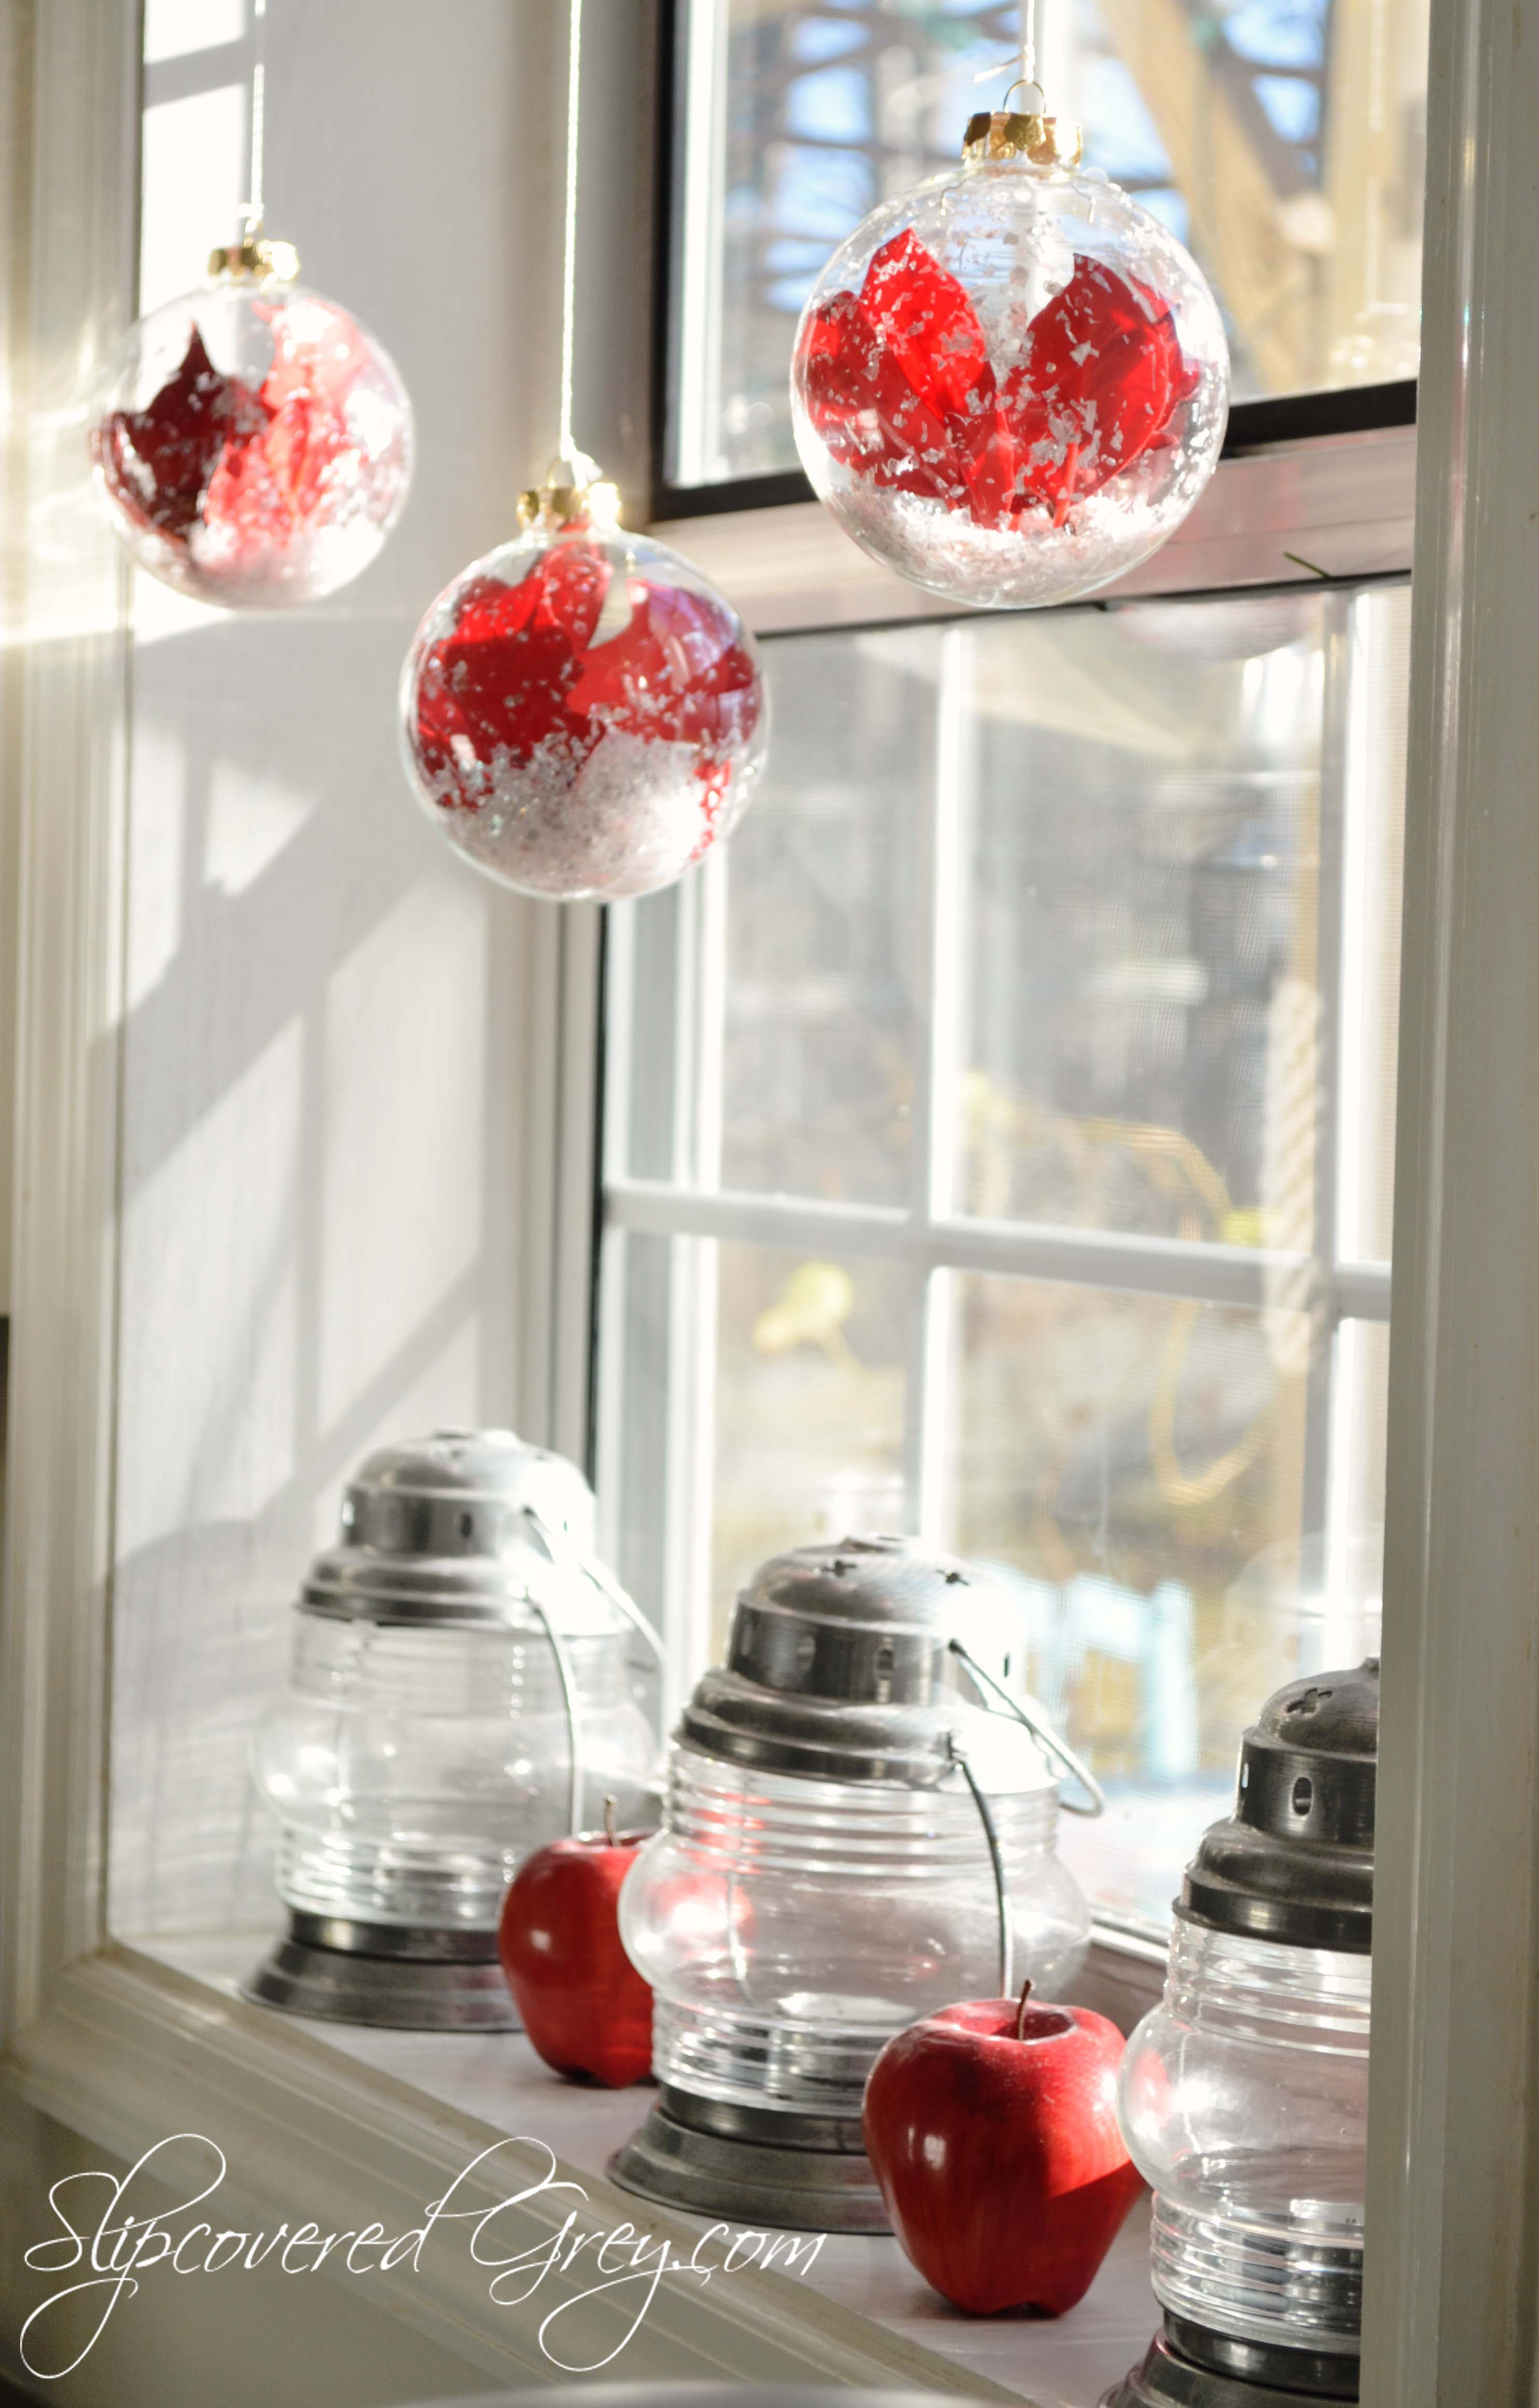 Step In For Some Christmas Cheer - Slipcovered Grey